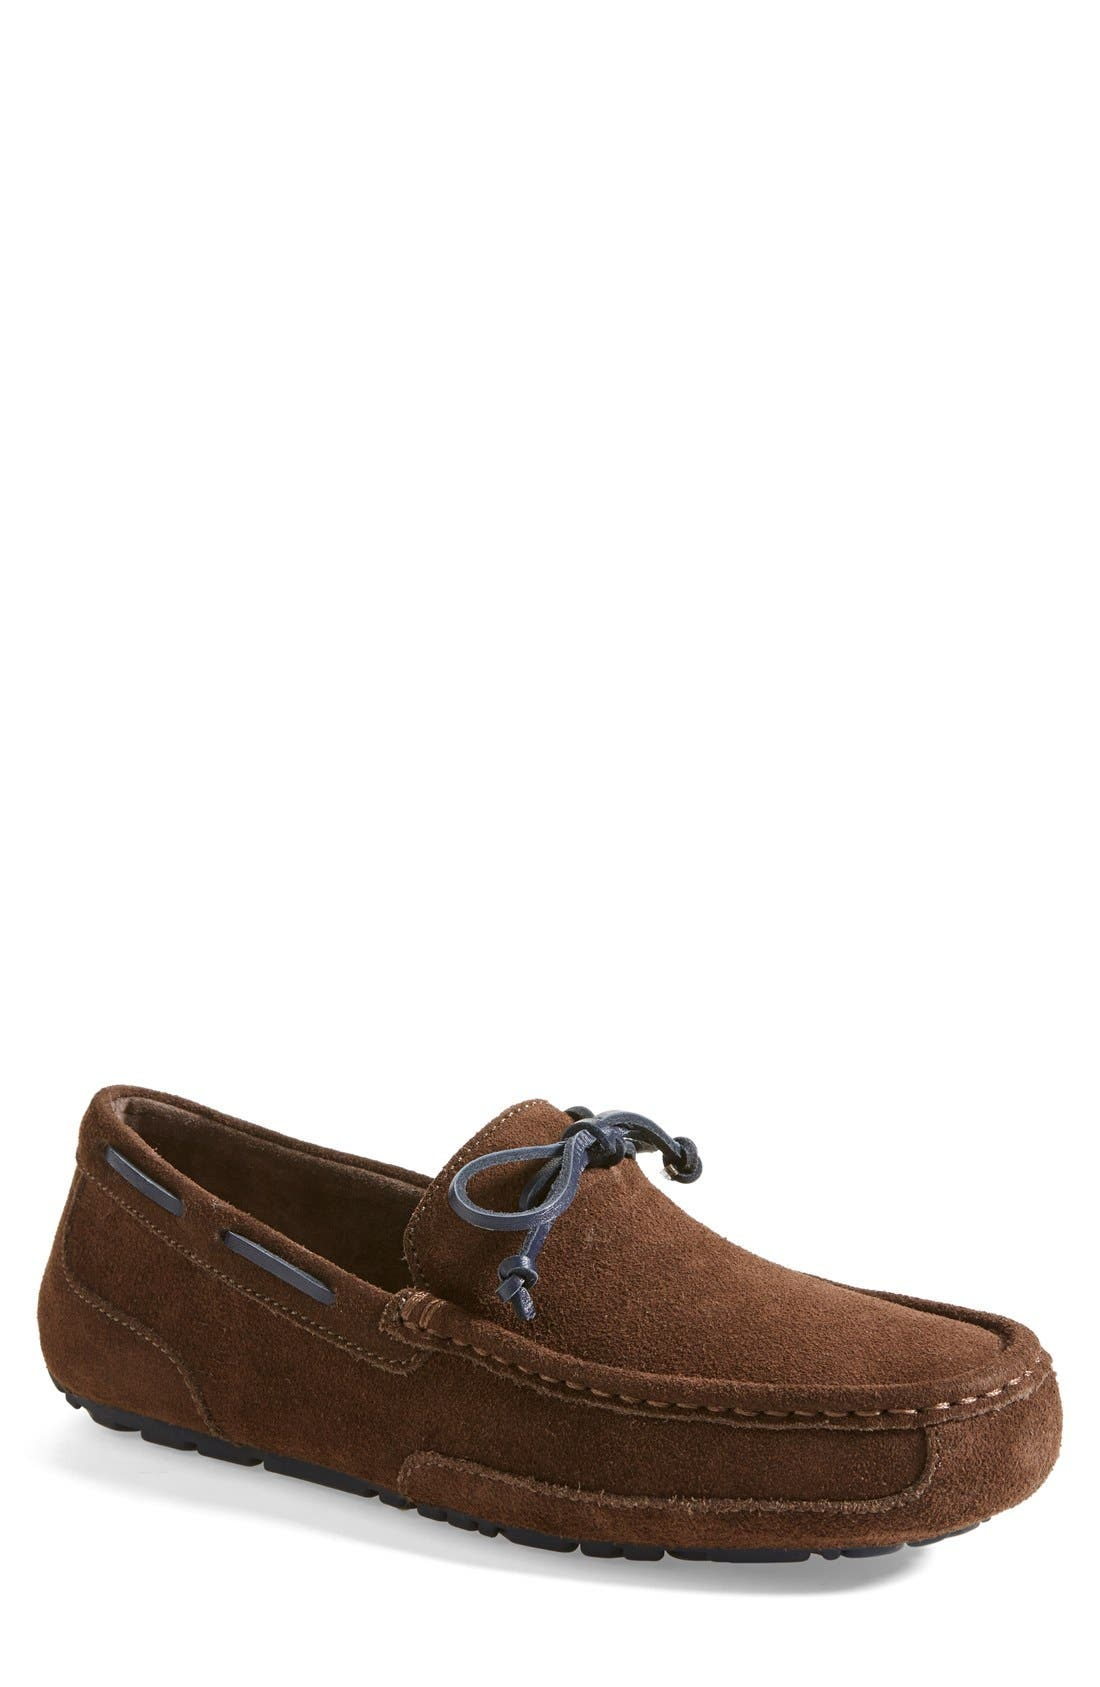 'Chester' Driving Loafer,                             Main thumbnail 4, color,